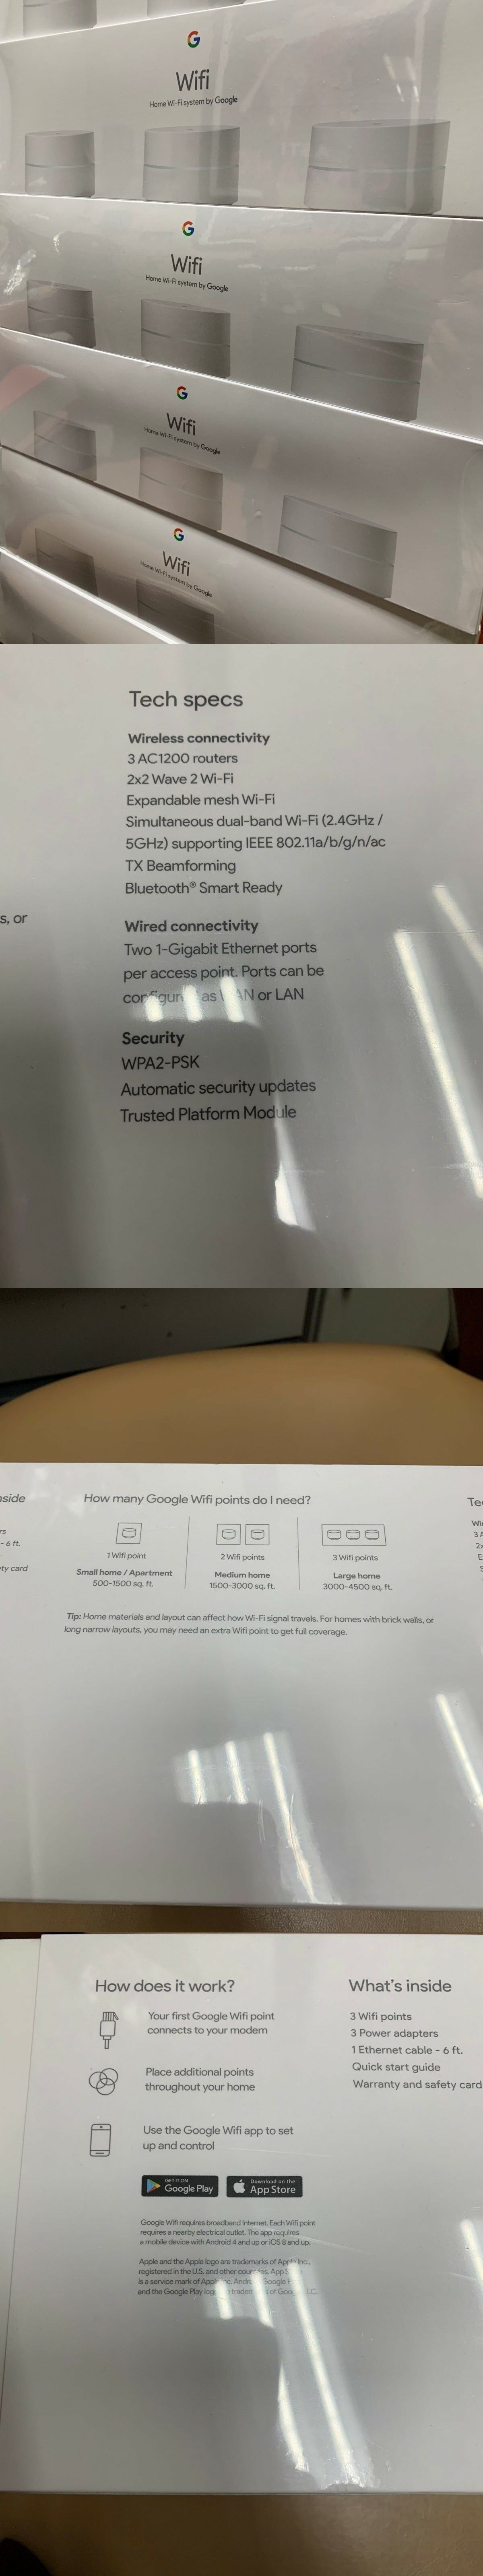 Home Networking and Connectivity 11176: Google Wifi Ac1200